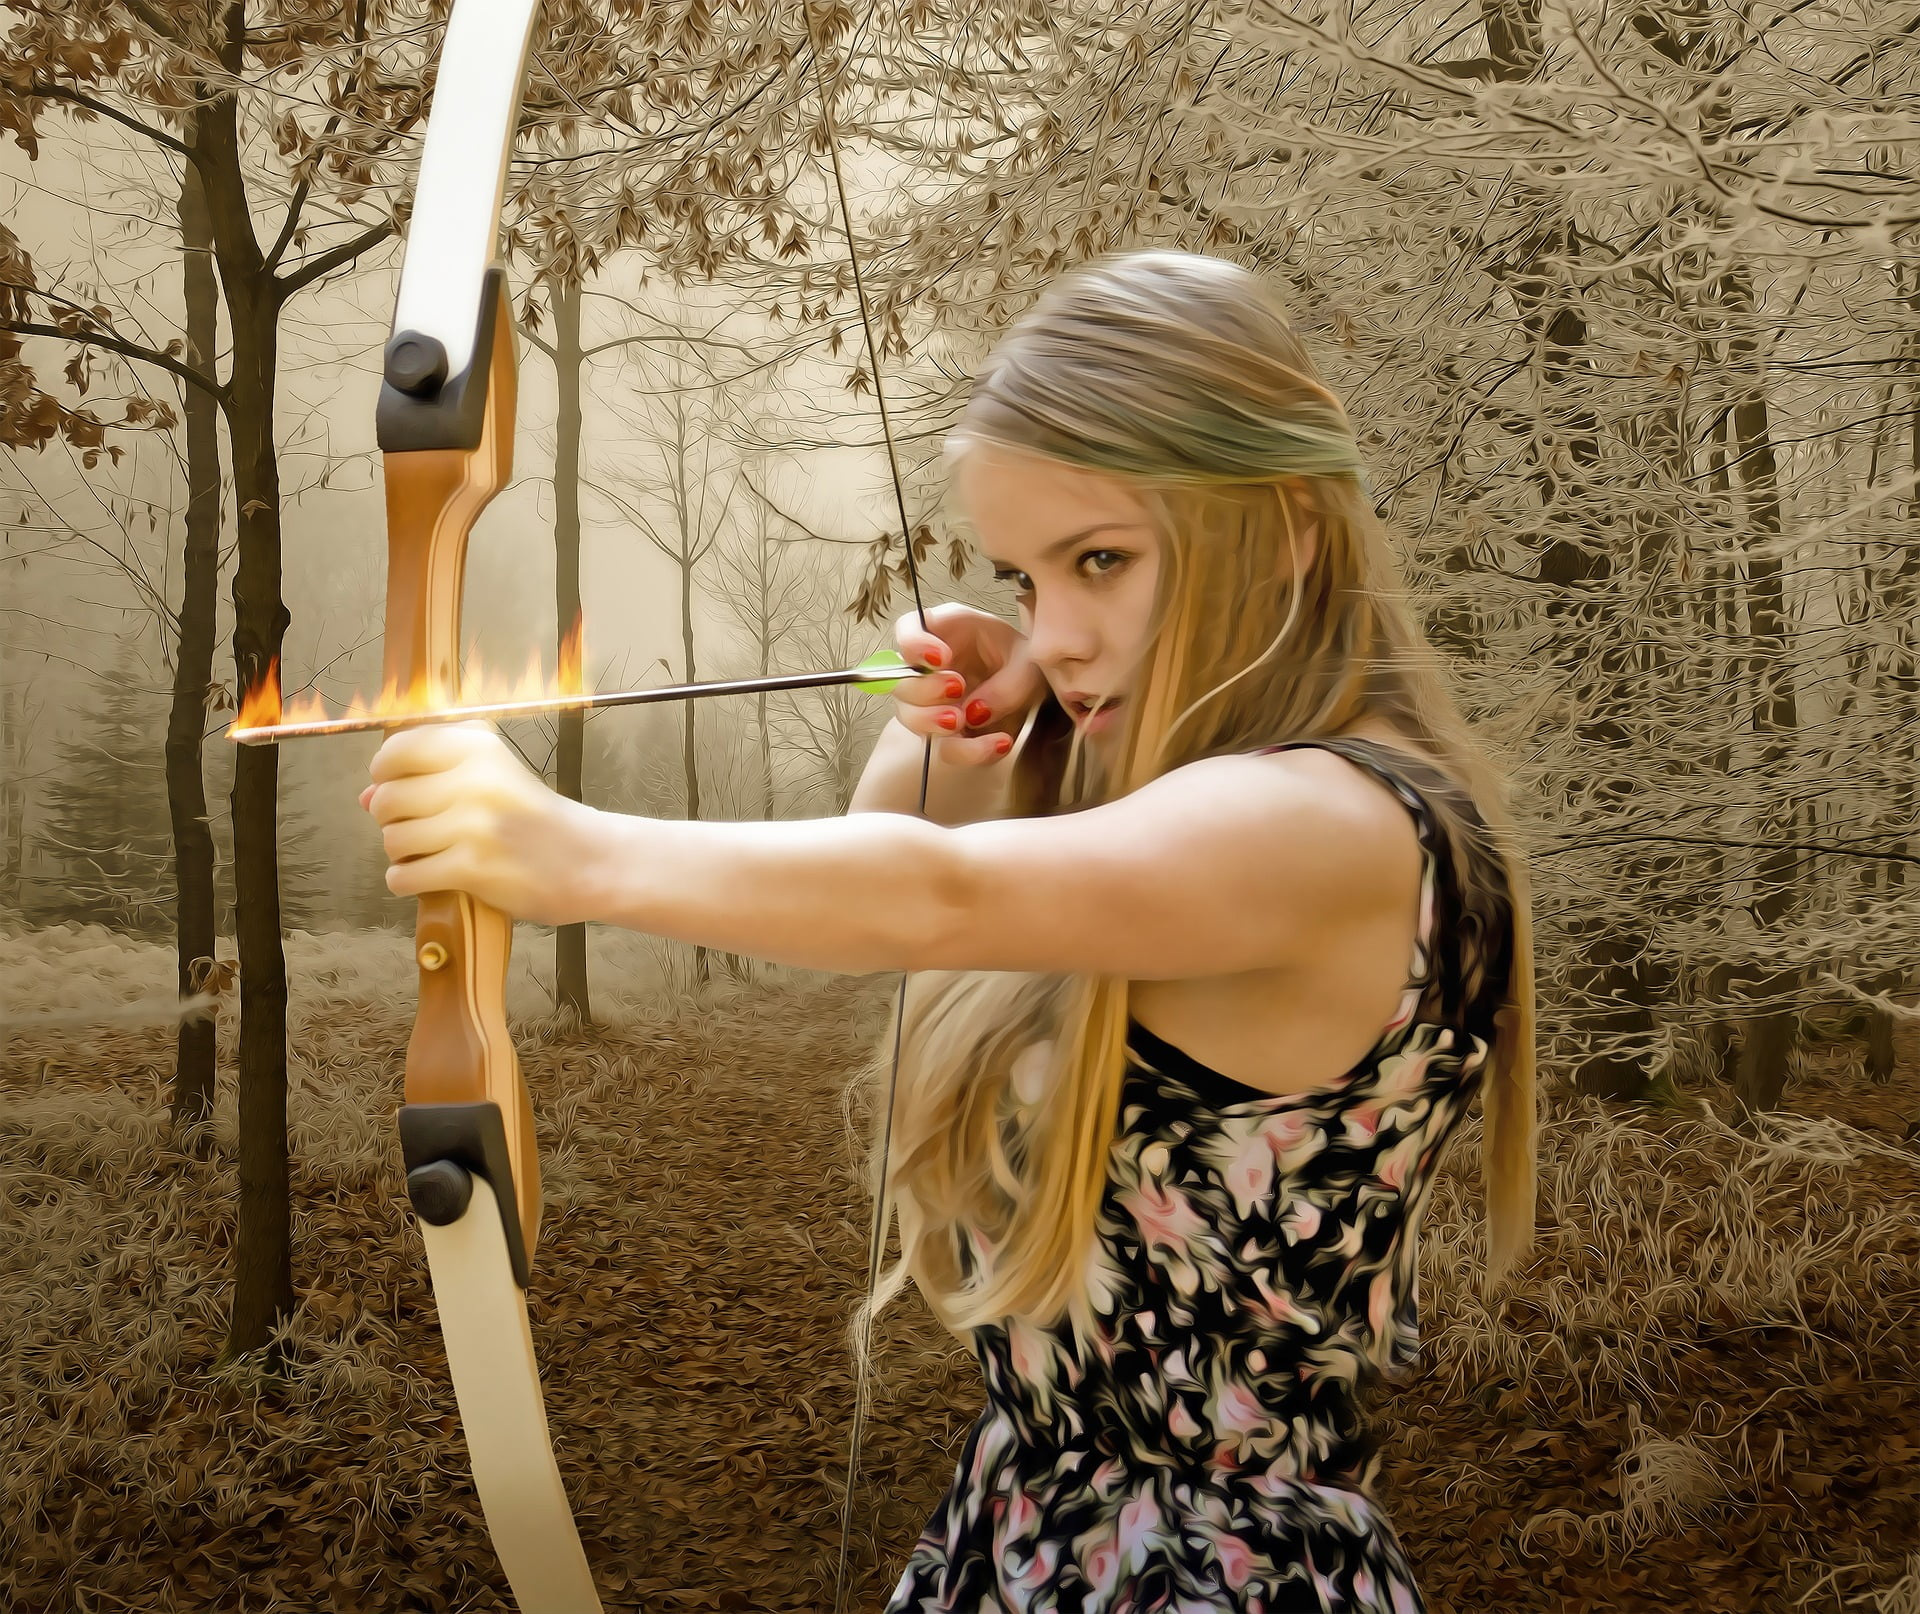 woman holding bow and flaming arrow